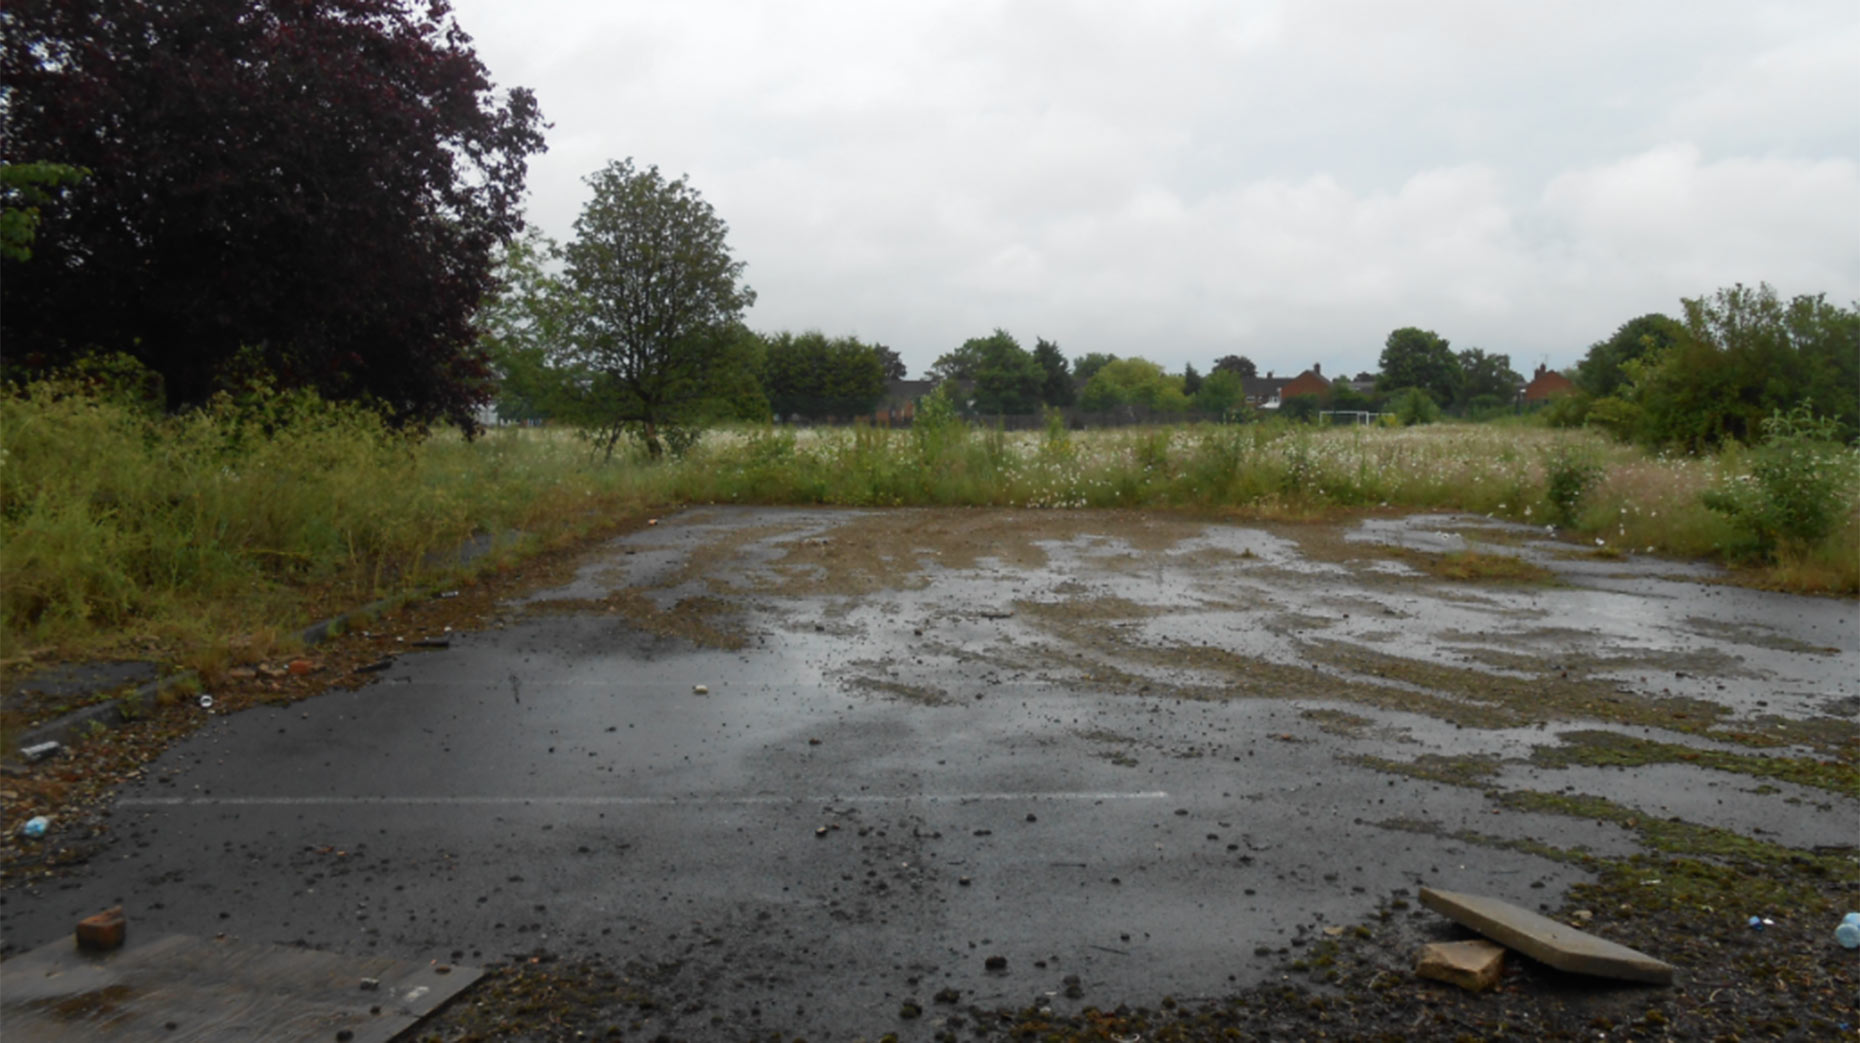 The new homes would be on the former Ermine Primary site, which is currently vacant after the school was demolished.